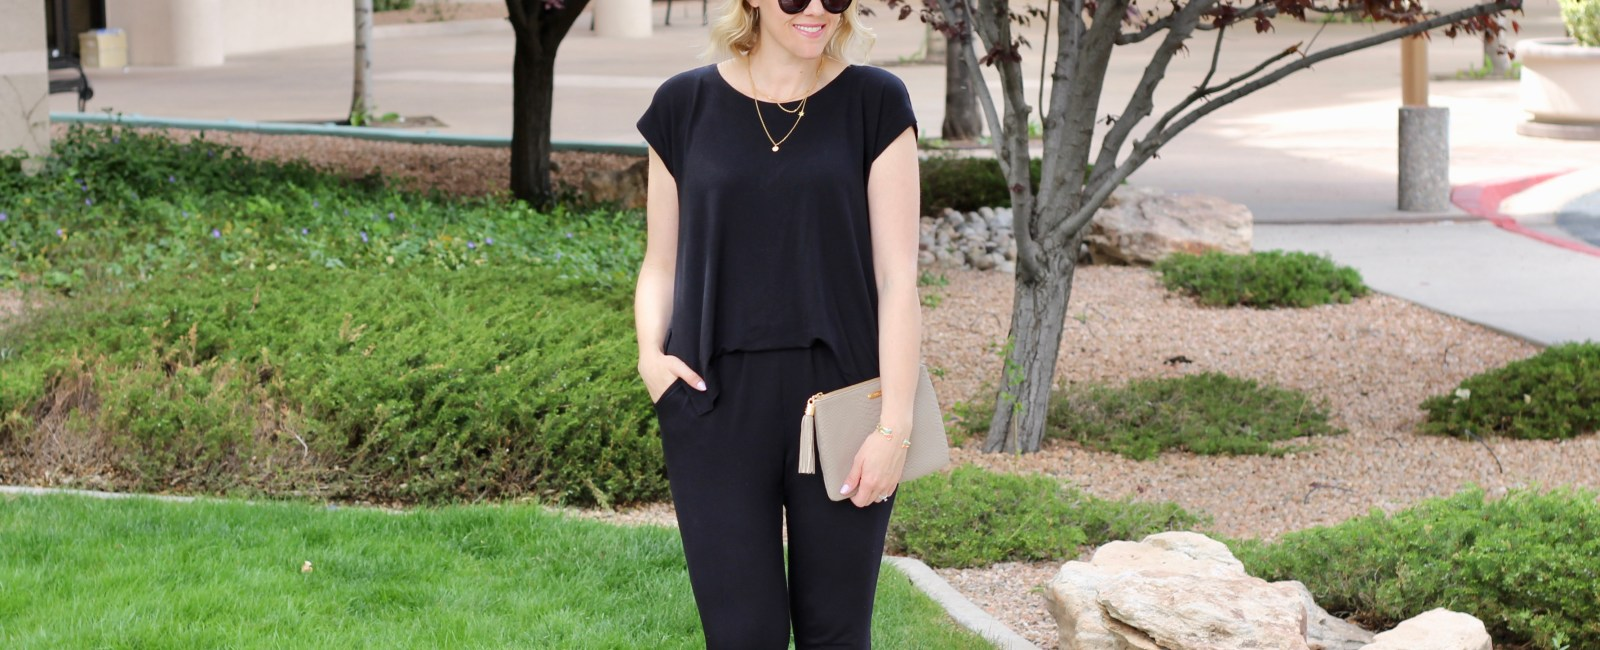 Styling a Jumpsuit + The Weekly Style Edit Link Up